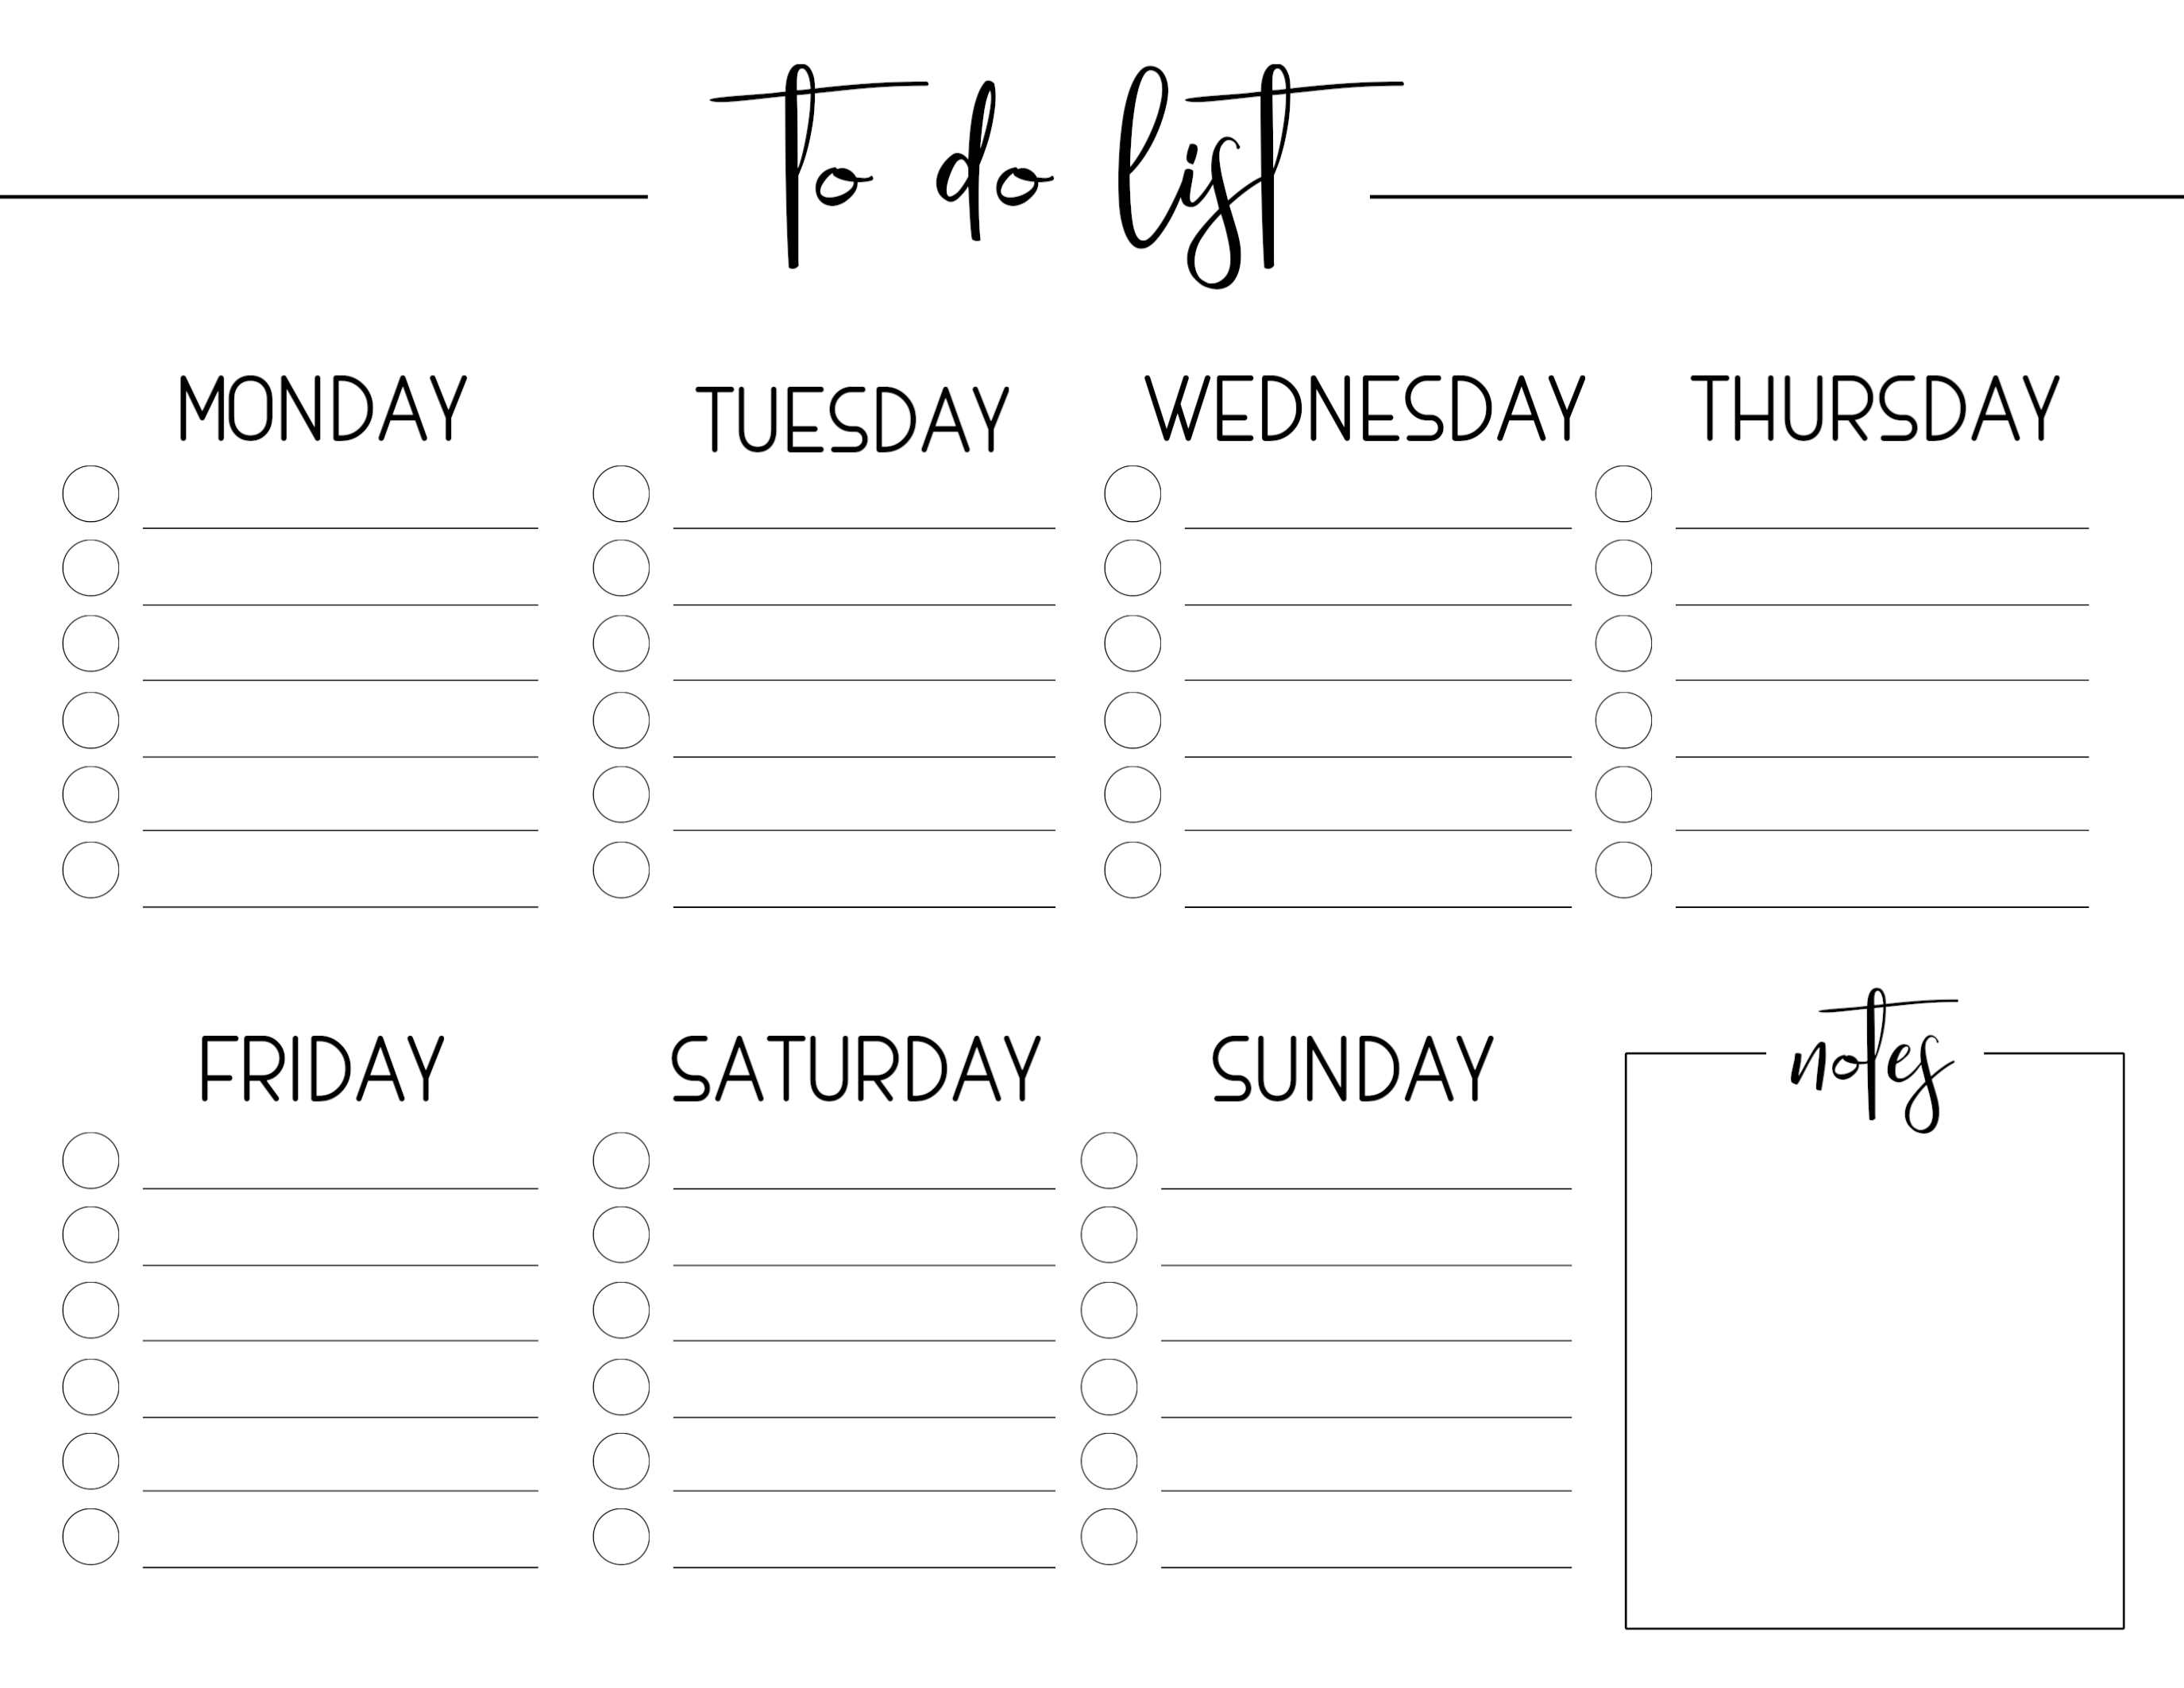 Weekly Free Printable To Do List - Paper Trail Design intended for Printable To Do Monday To Friday